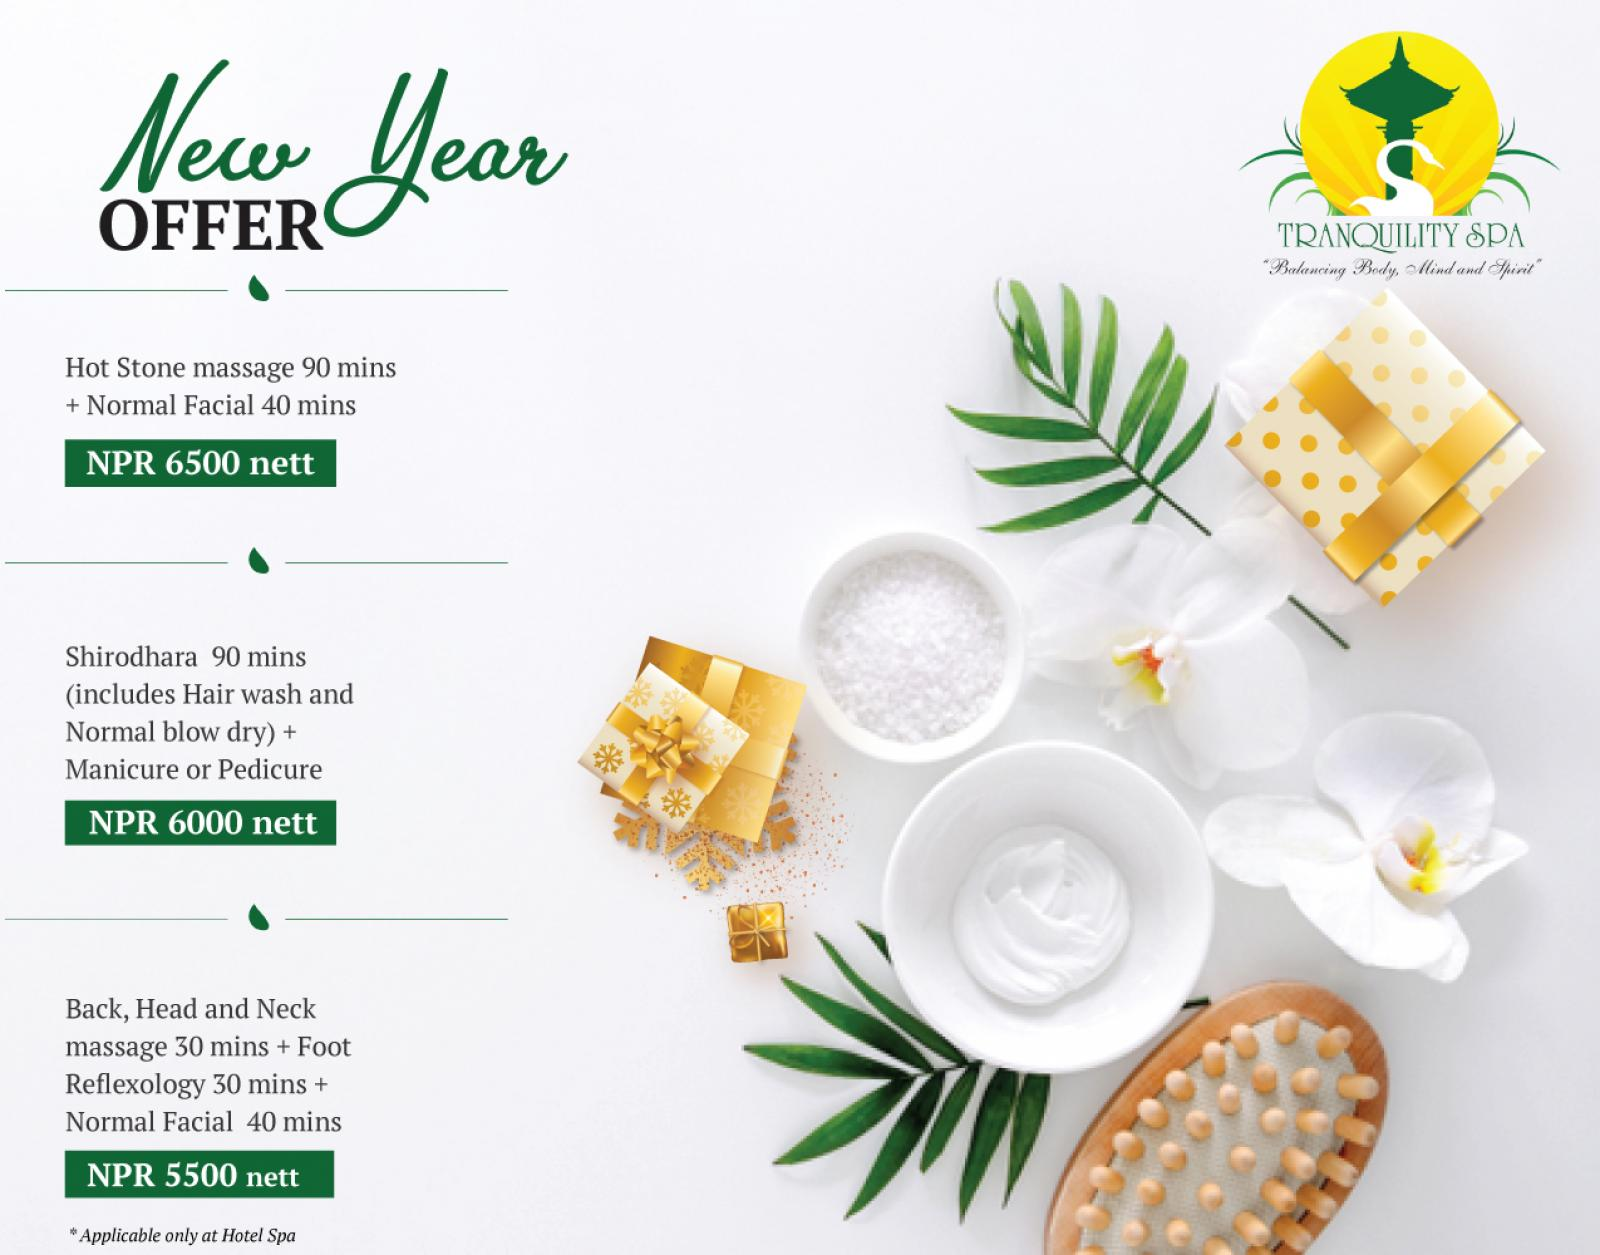 New Year Offer (For Hotel Spa)